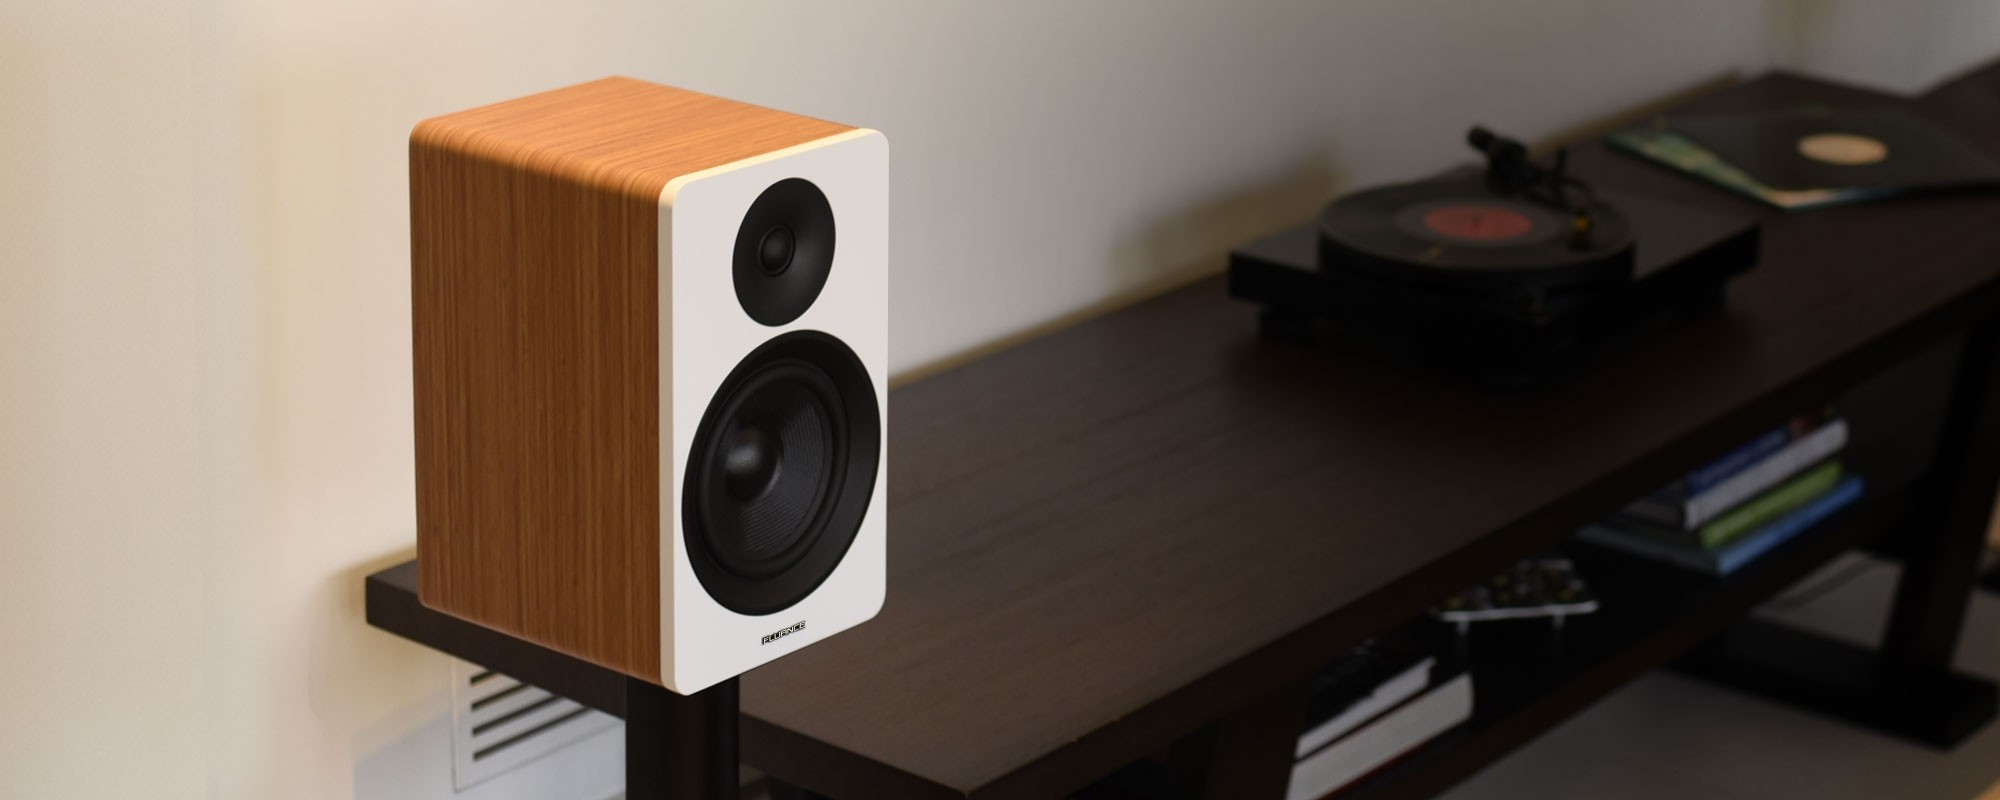 "Ai60 Powered 6.5"" High Performance Bookshelf Speakers - Bamboo"